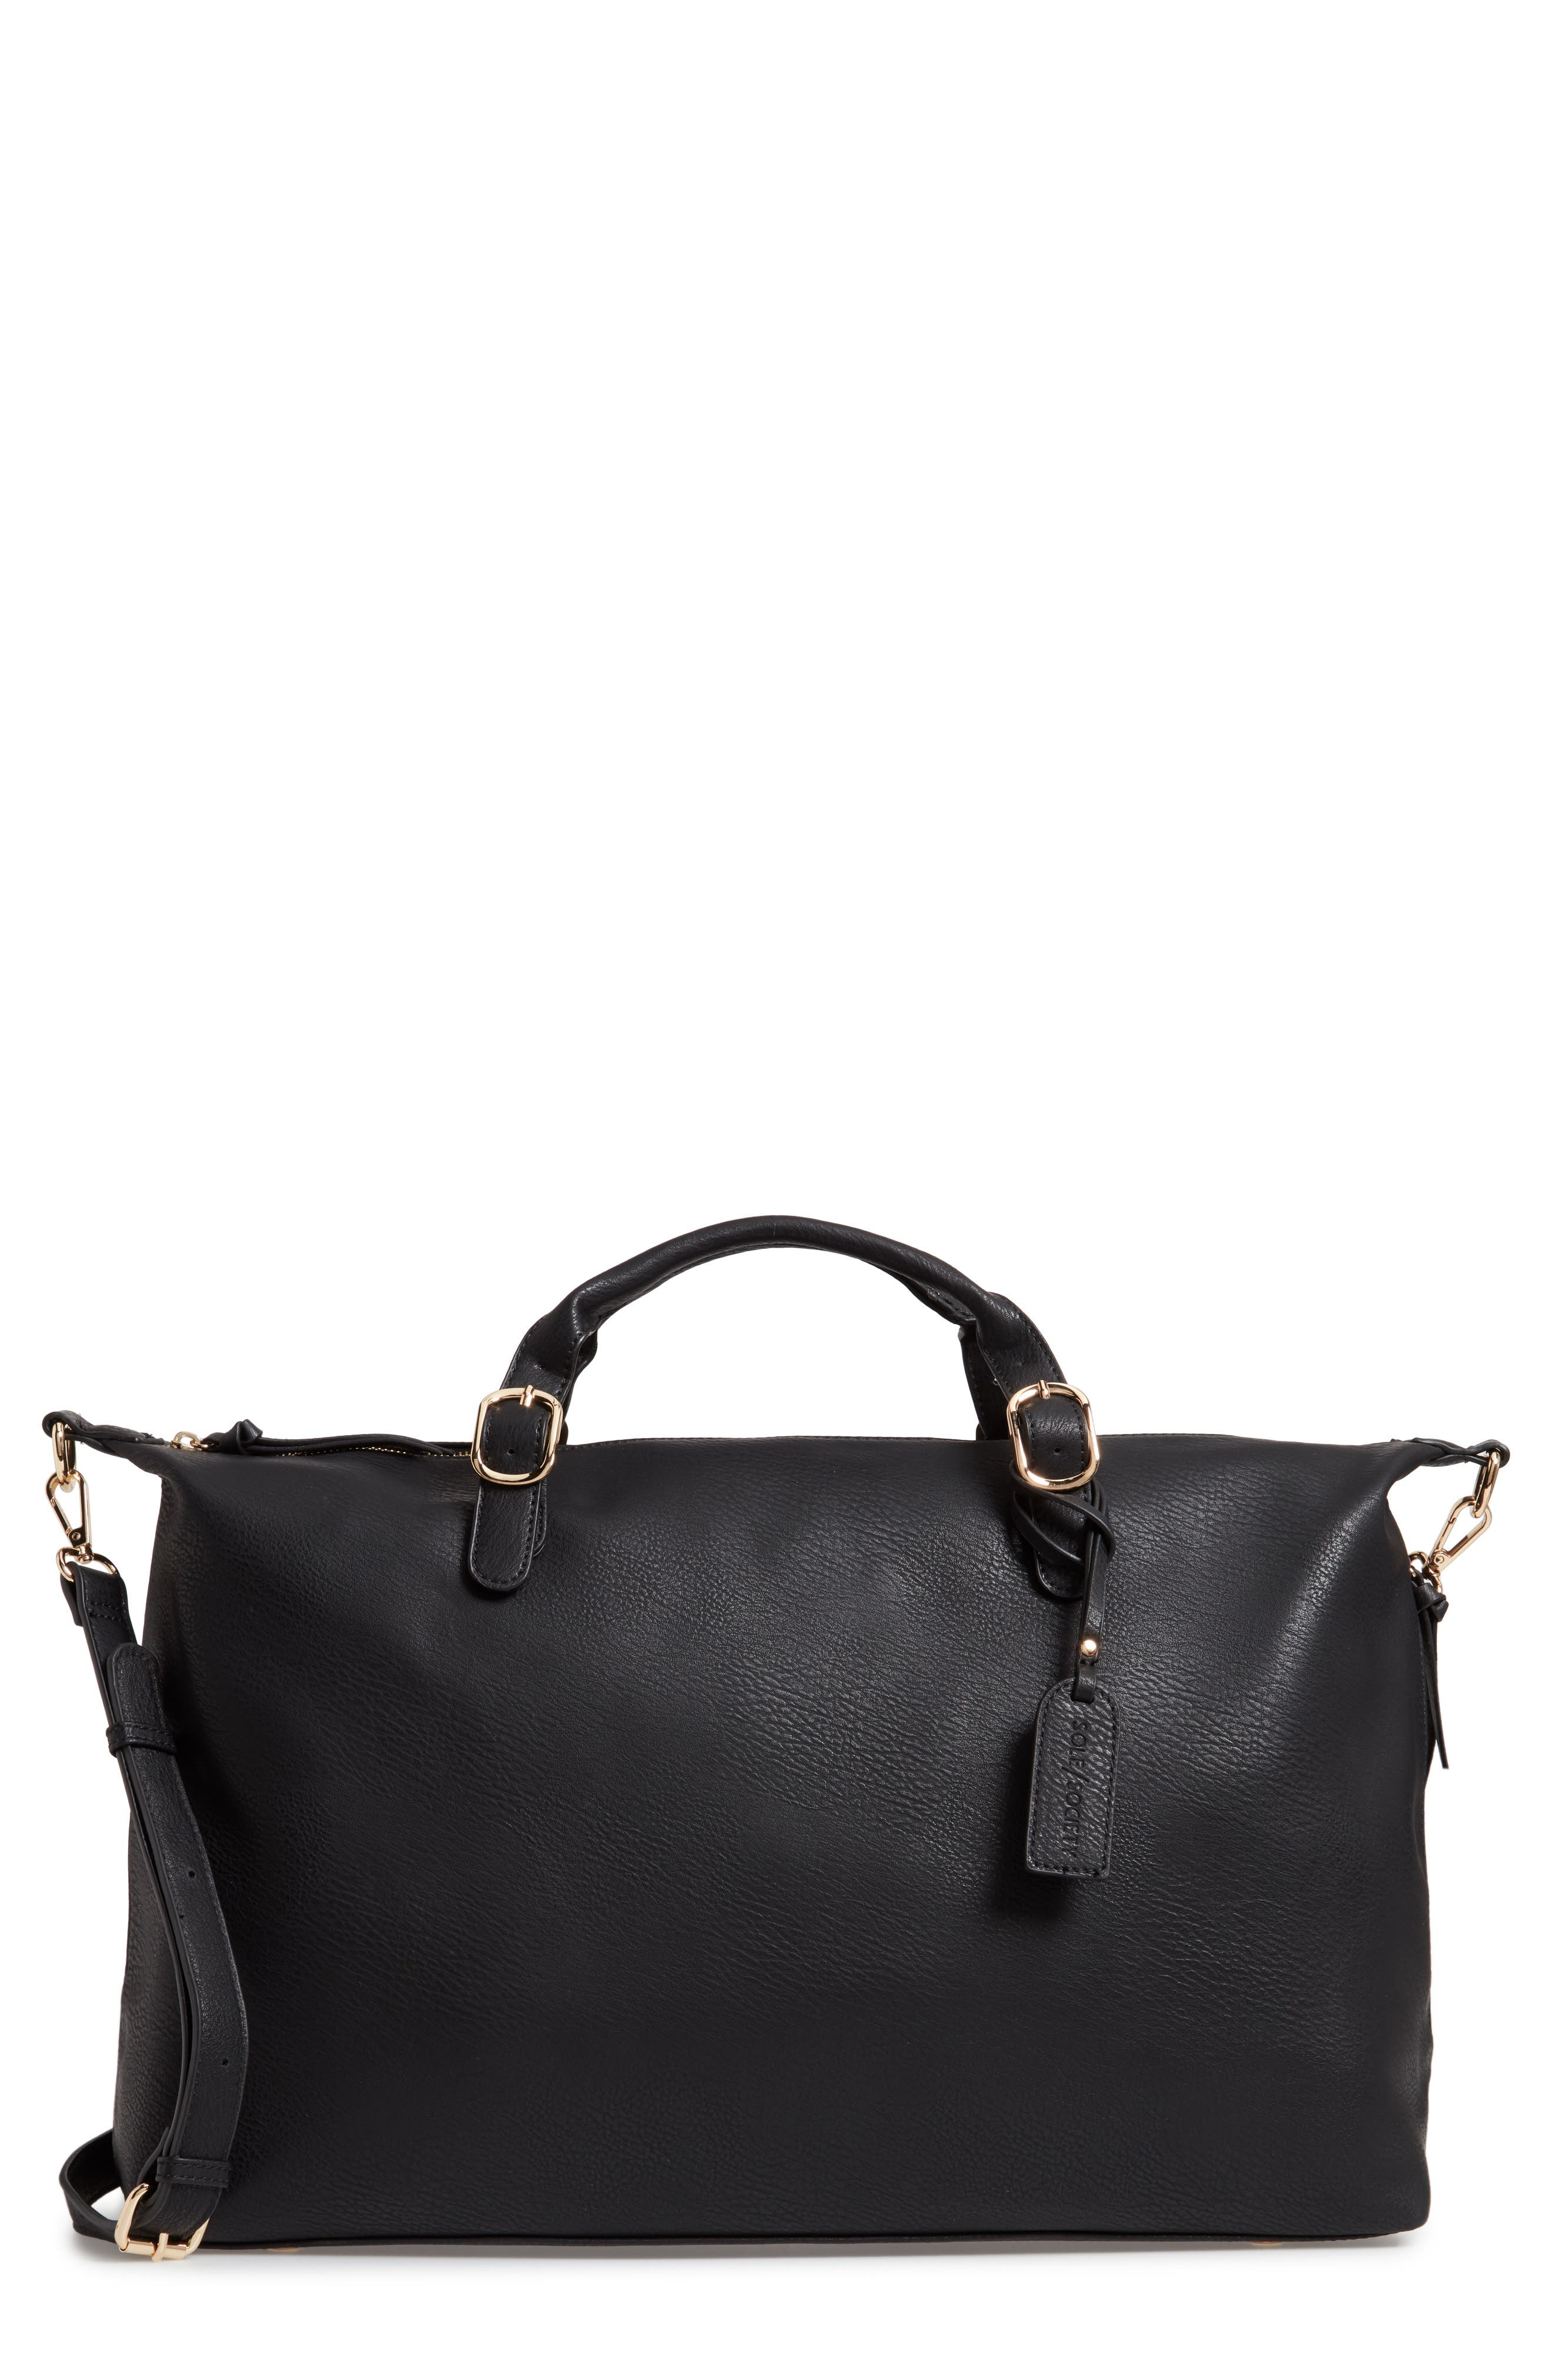 SOLE SOCIETY Grant Faux Leather Weekend Bag, Main, color, BLACK